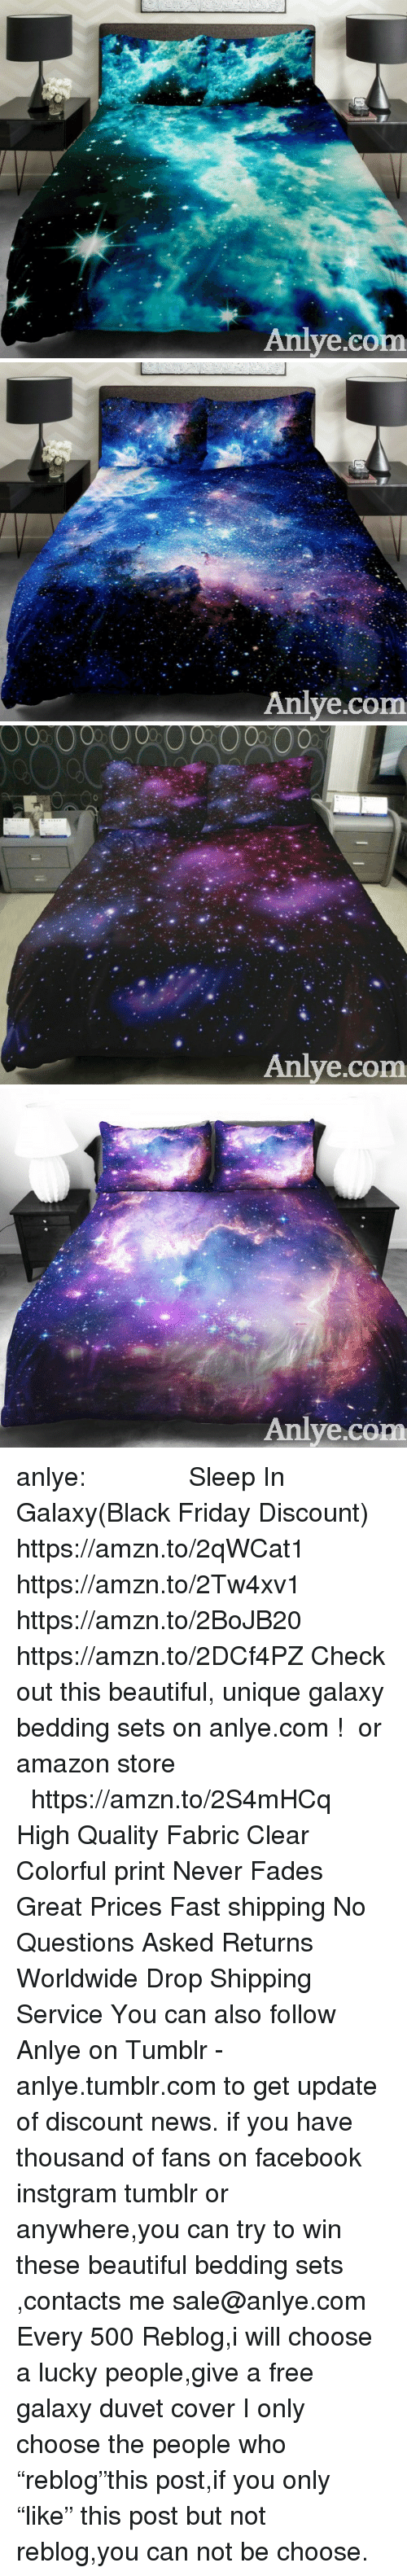 """bedding: Aniye.co   Anlye.com   00  00  00  002000  0  Anlye.com   Anlye.com anlye:       Sleep In Galaxy(Black Friday Discount)  https://amzn.to/2qWCat1 https://amzn.to/2Tw4xv1 https://amzn.to/2BoJB20 https://amzn.to/2DCf4PZ Check out this beautiful, unique galaxy bedding sets on anlye.com ! or amazon store https://amzn.to/2S4mHCq High Quality Fabric Clear  Colorful print Never Fades Great Prices Fast shipping No Questions Asked Returns Worldwide Drop Shipping Service You can also follow Anlye on Tumblr - anlye.tumblr.com to get update of discount news. if you have thousand of fans on facebook instgram tumblr or anywhere,you can try to win these beautiful bedding sets ,contacts me sale@anlye.com Every 500 Reblog,i will choose a lucky people,give a free galaxy duvet cover I only choose the people who """"reblog""""this post,if you only """"like"""" this post but not reblog,you can not be choose."""